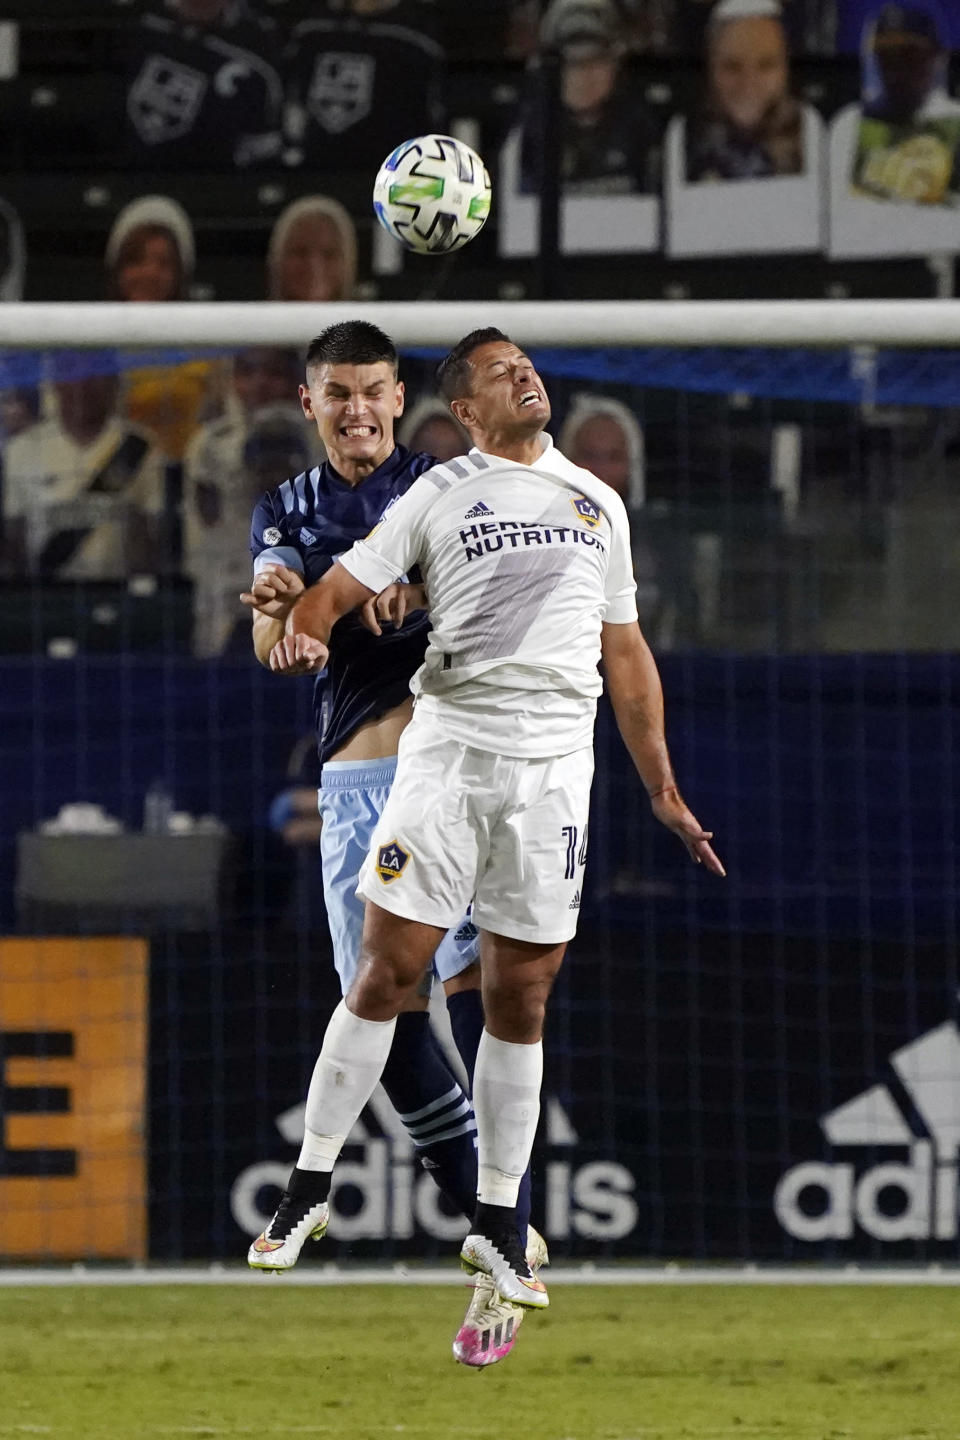 Los Angeles Galaxy's Javier Hernandez, front, goes up for a header as Vancouver Whitecaps's Ranko Veselinovic defends during the second half of an MLS soccer match, Sunday, Oct. 18, 2020, in Carson, Calif. (AP Photo/Marcio Jose Sanchez)